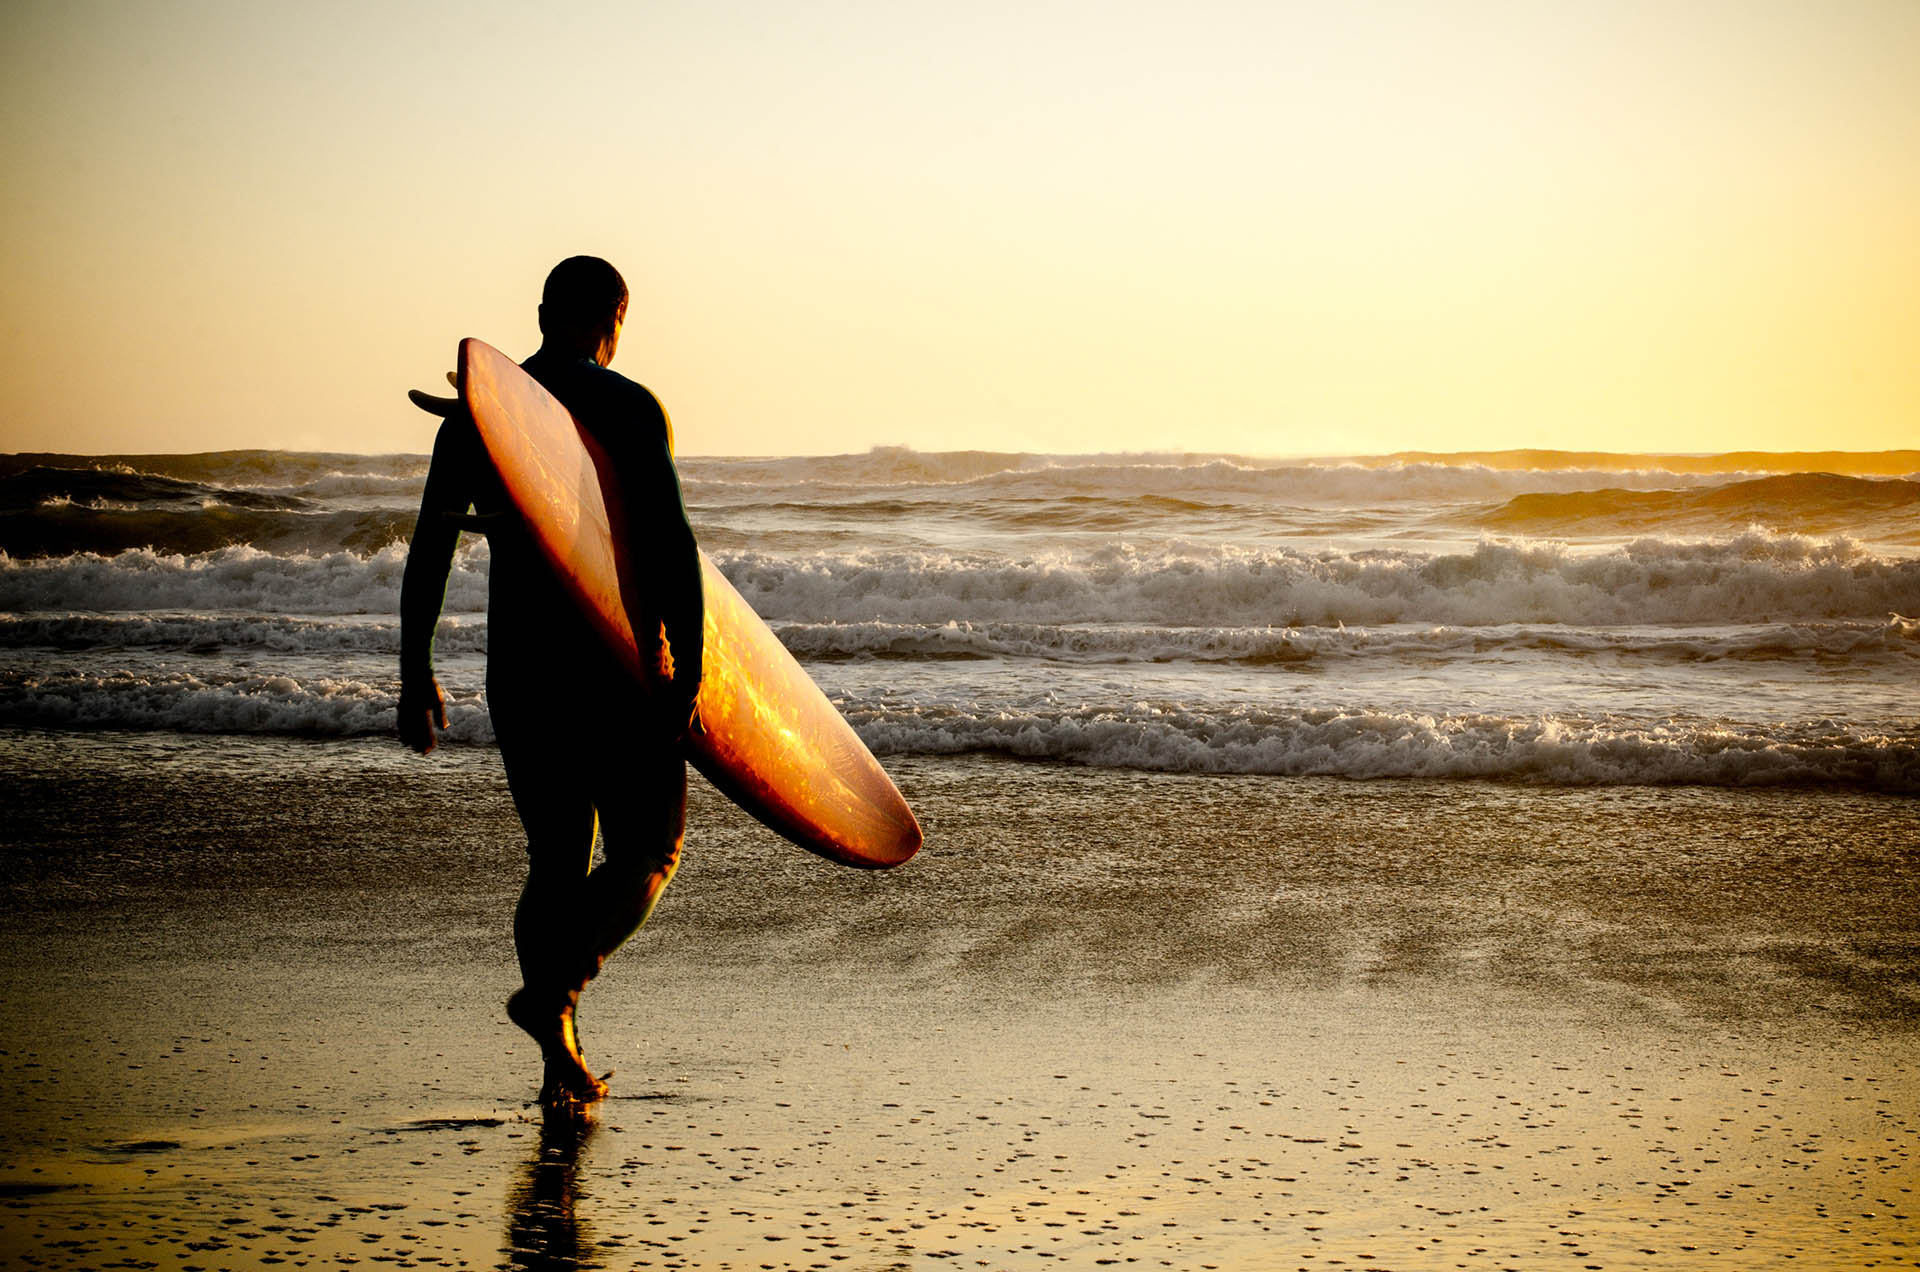 Surf Safely: Top 5 Mobile Security Apps